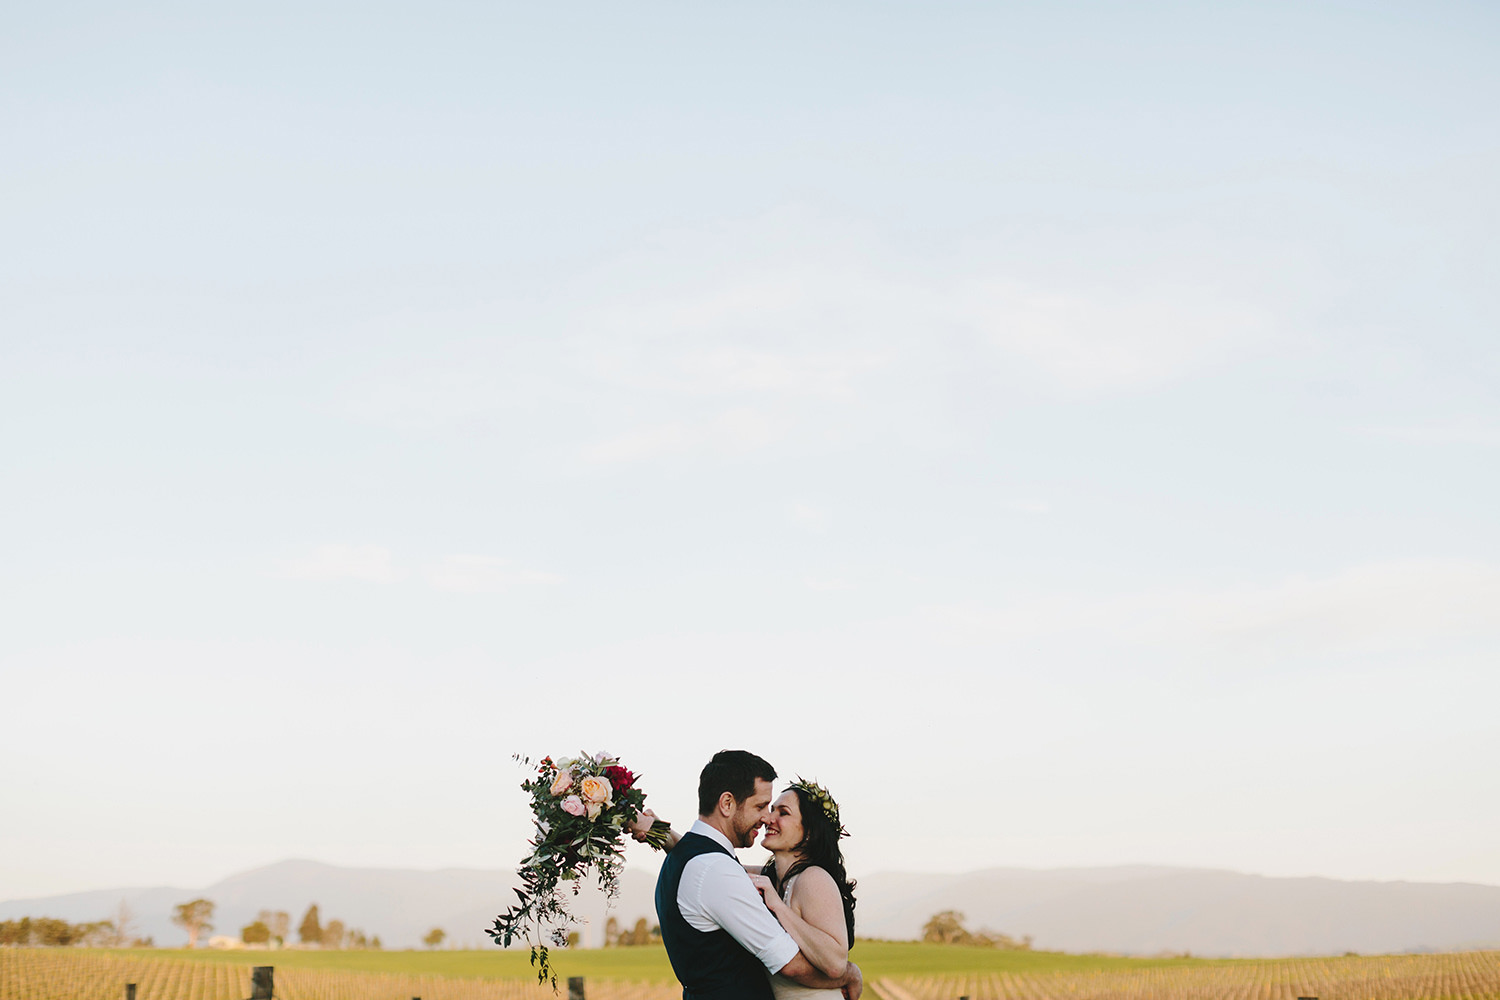 Melbourne_Winery_Wedding_Chris_Merrily001.JPG